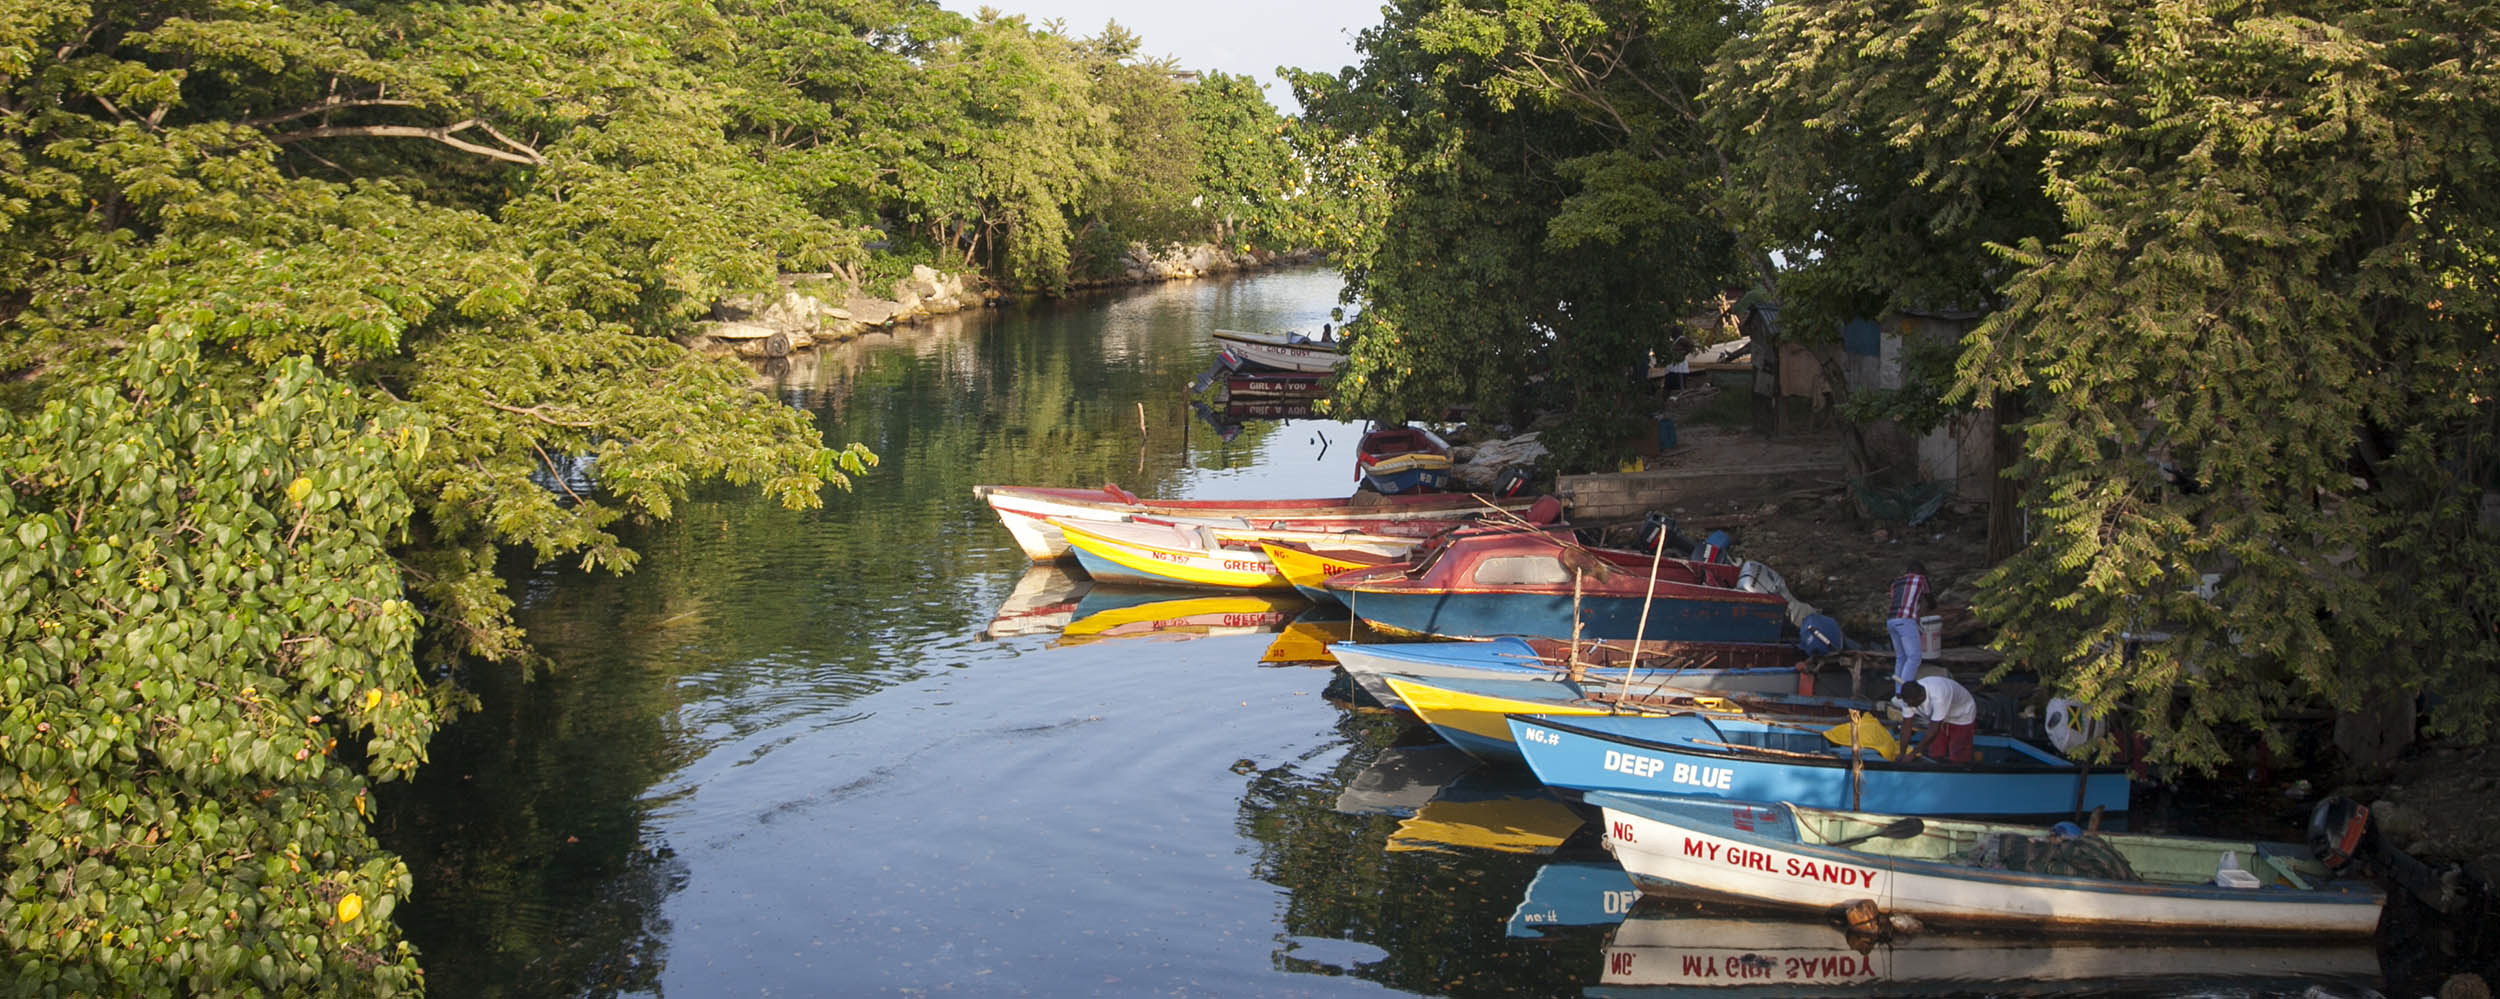 River and Fishing Village, Negril Jamaica